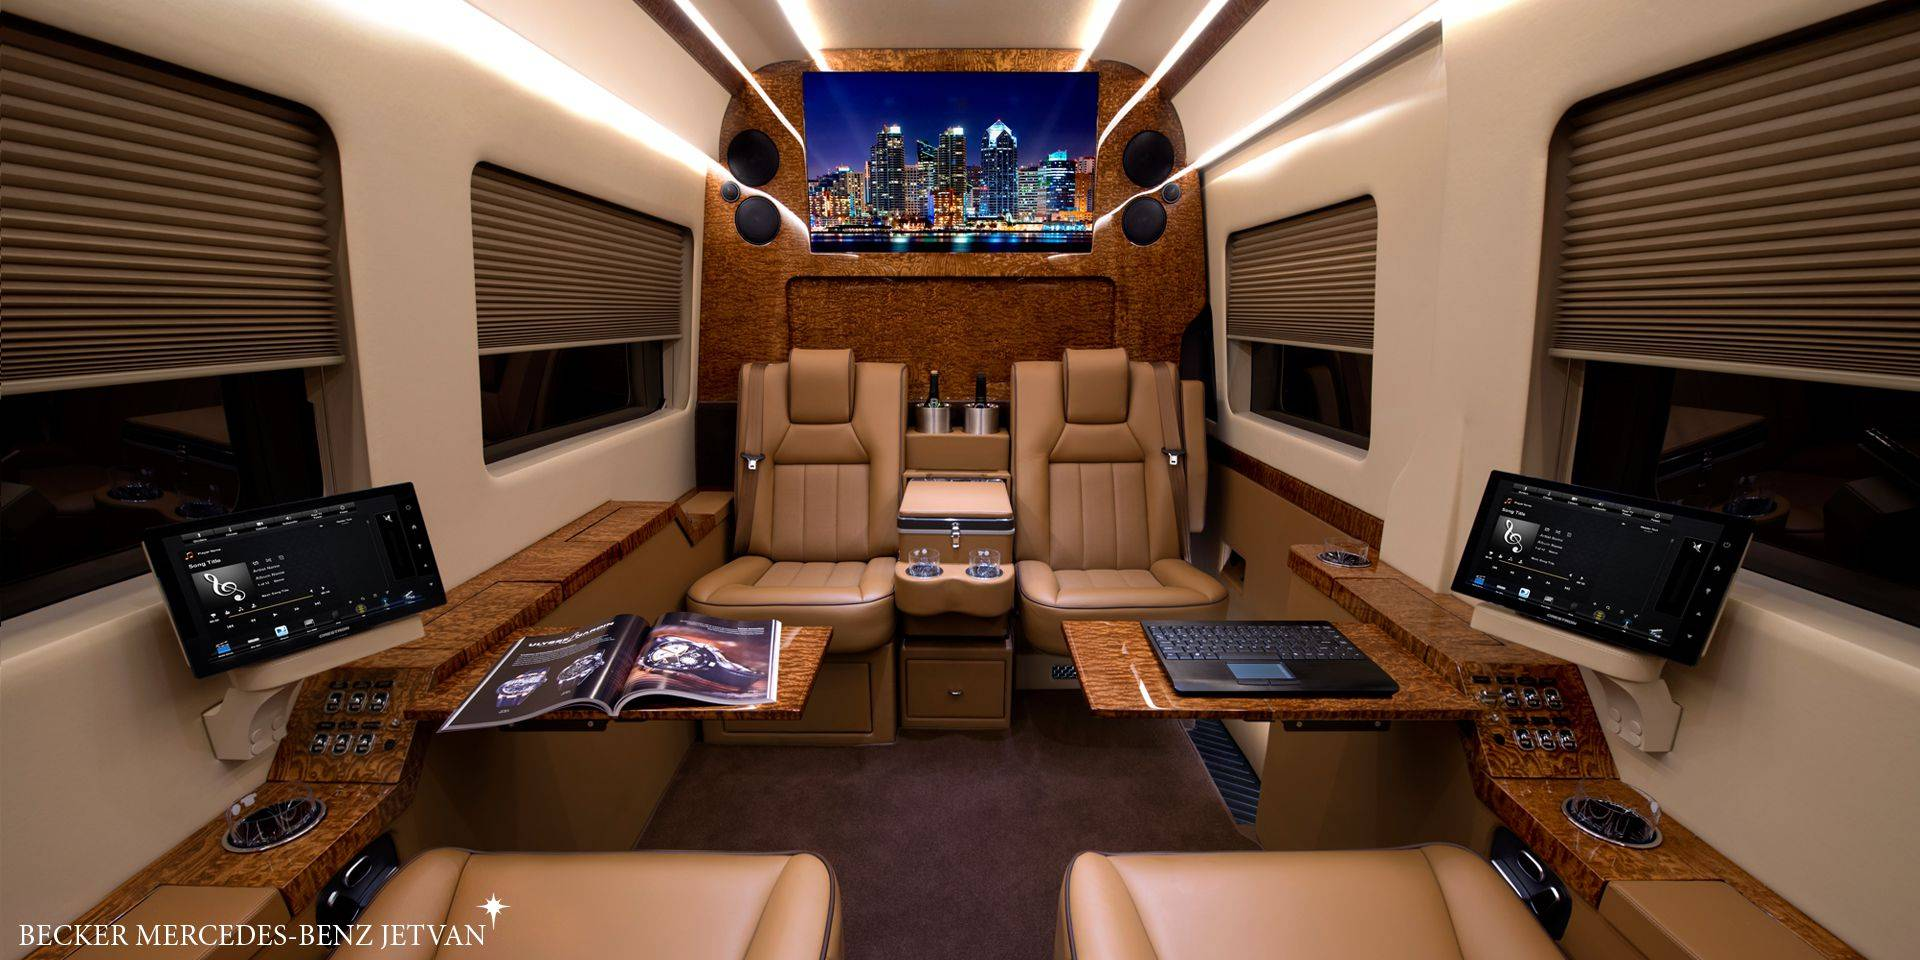 Becker Automotive Design Is A California Based Firm That Turns Any Ordinary Mercedes Benz Sprinter Van Into Luxury Stronghold